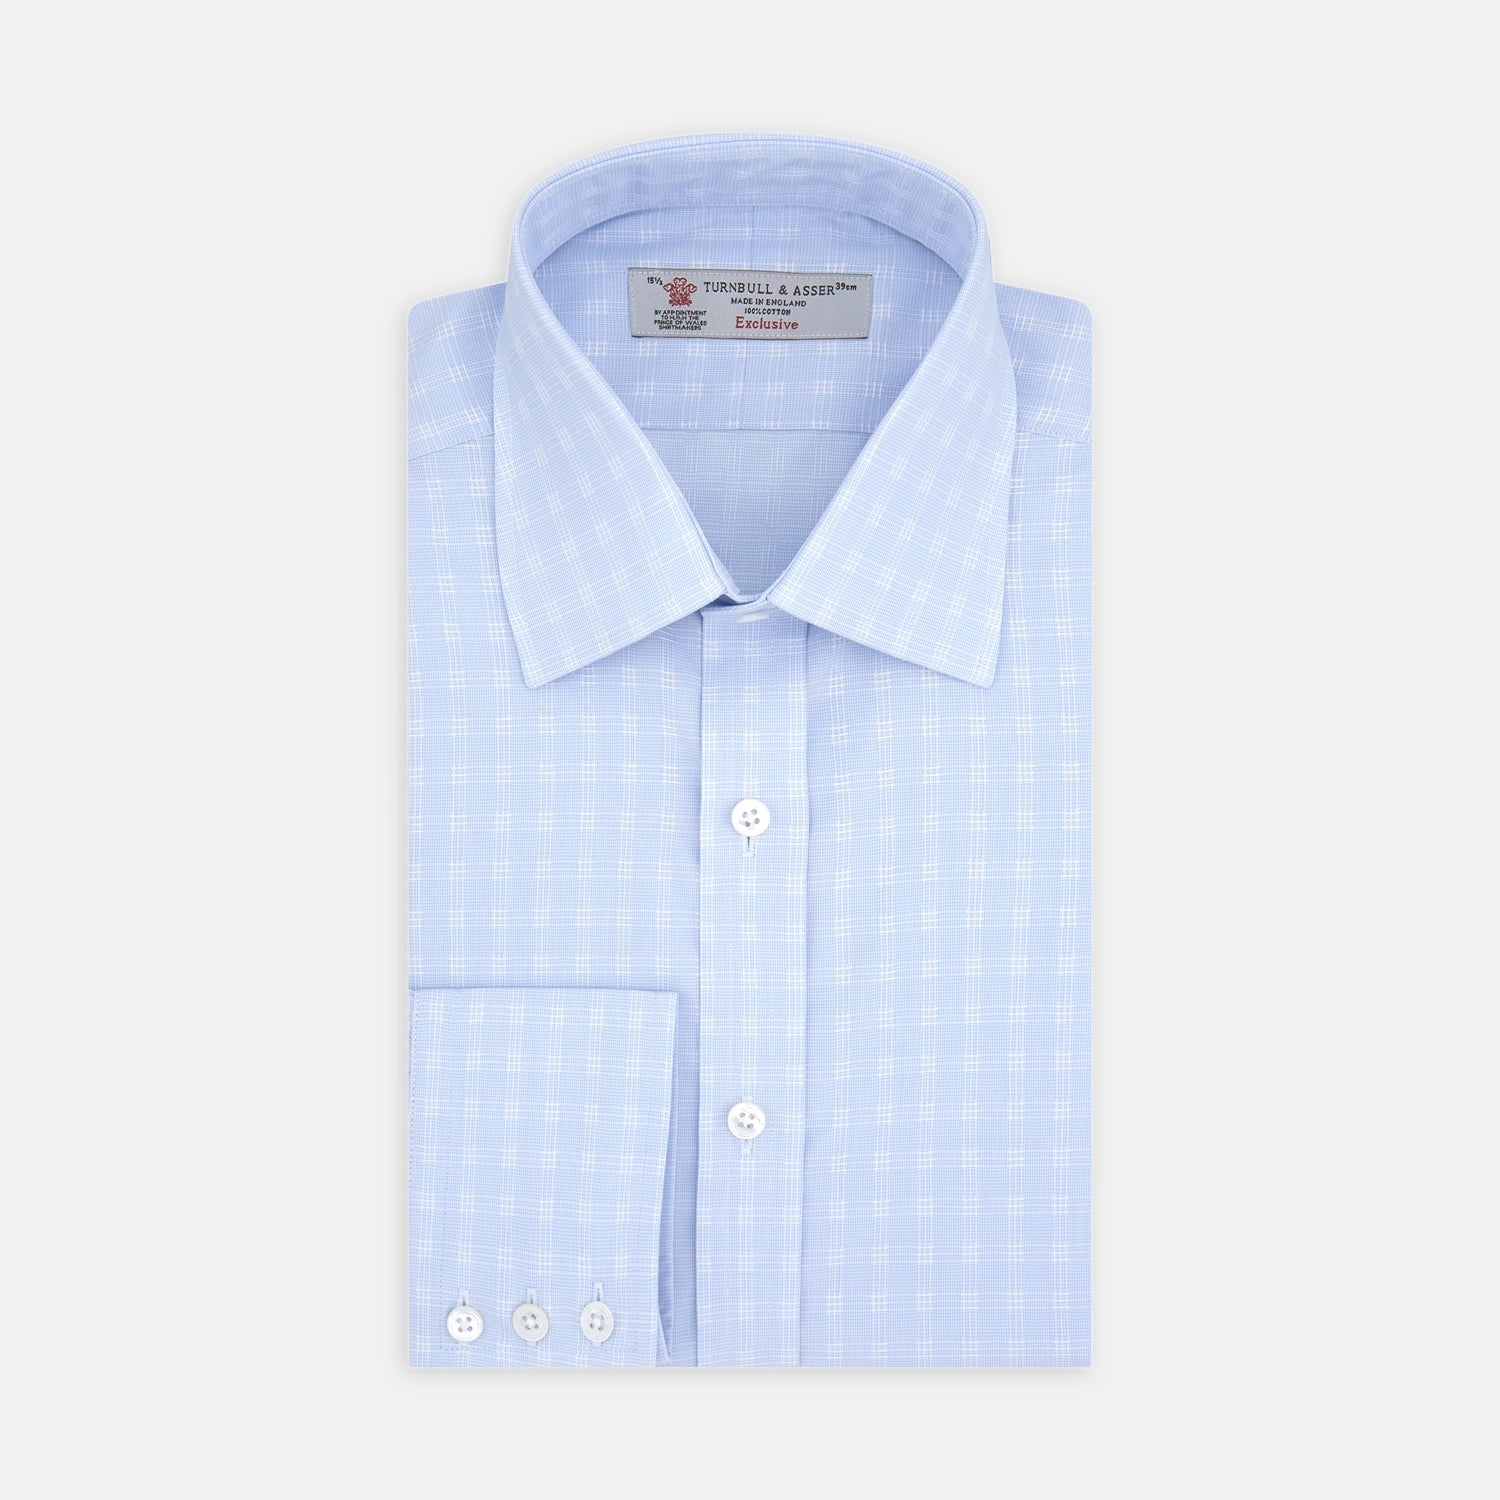 Pale Blue and White 3-Row Check Shirt with T&A Collar and 3-Button Cuffs